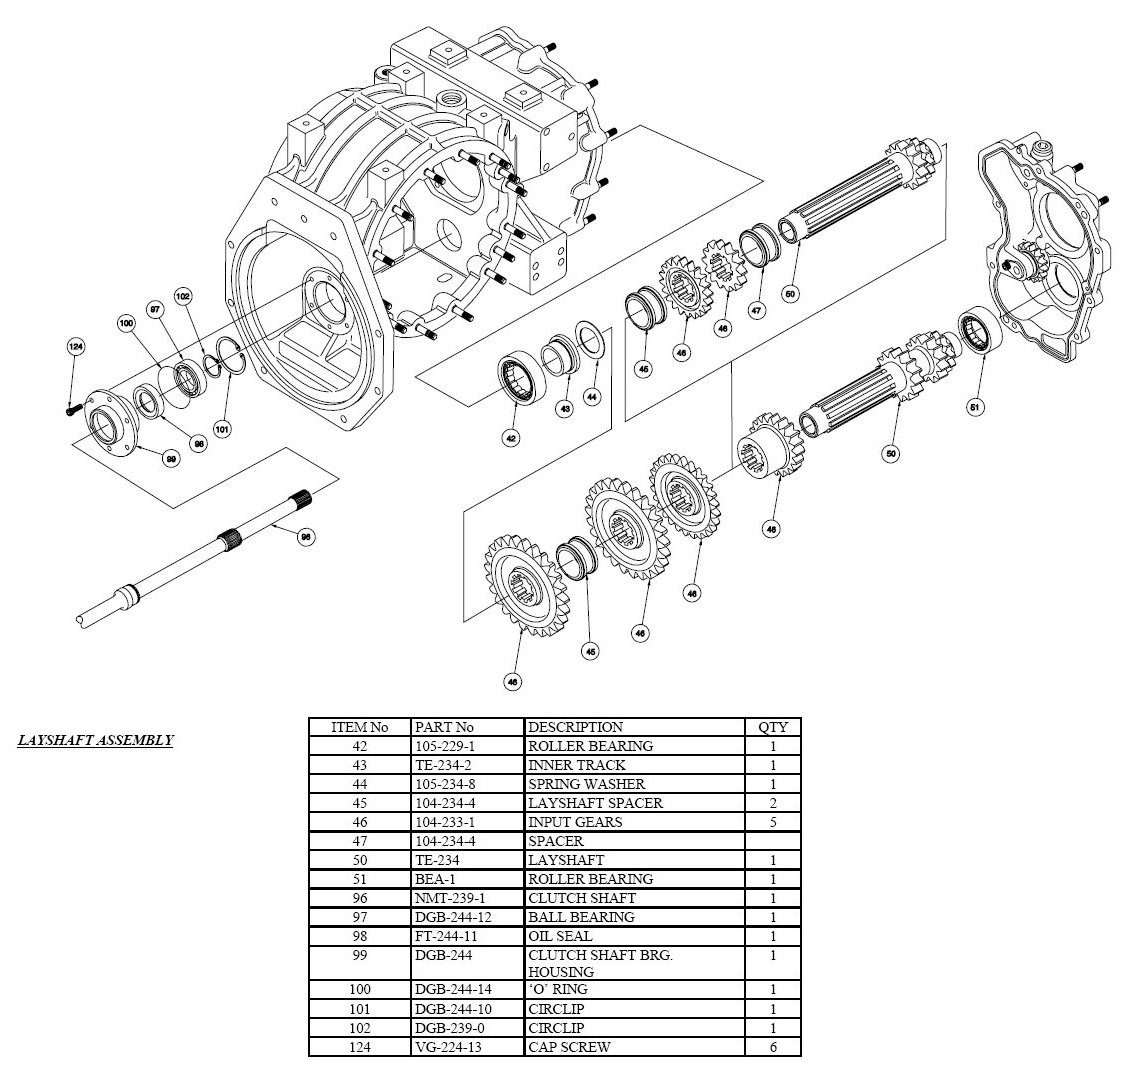 NMT Gearbox